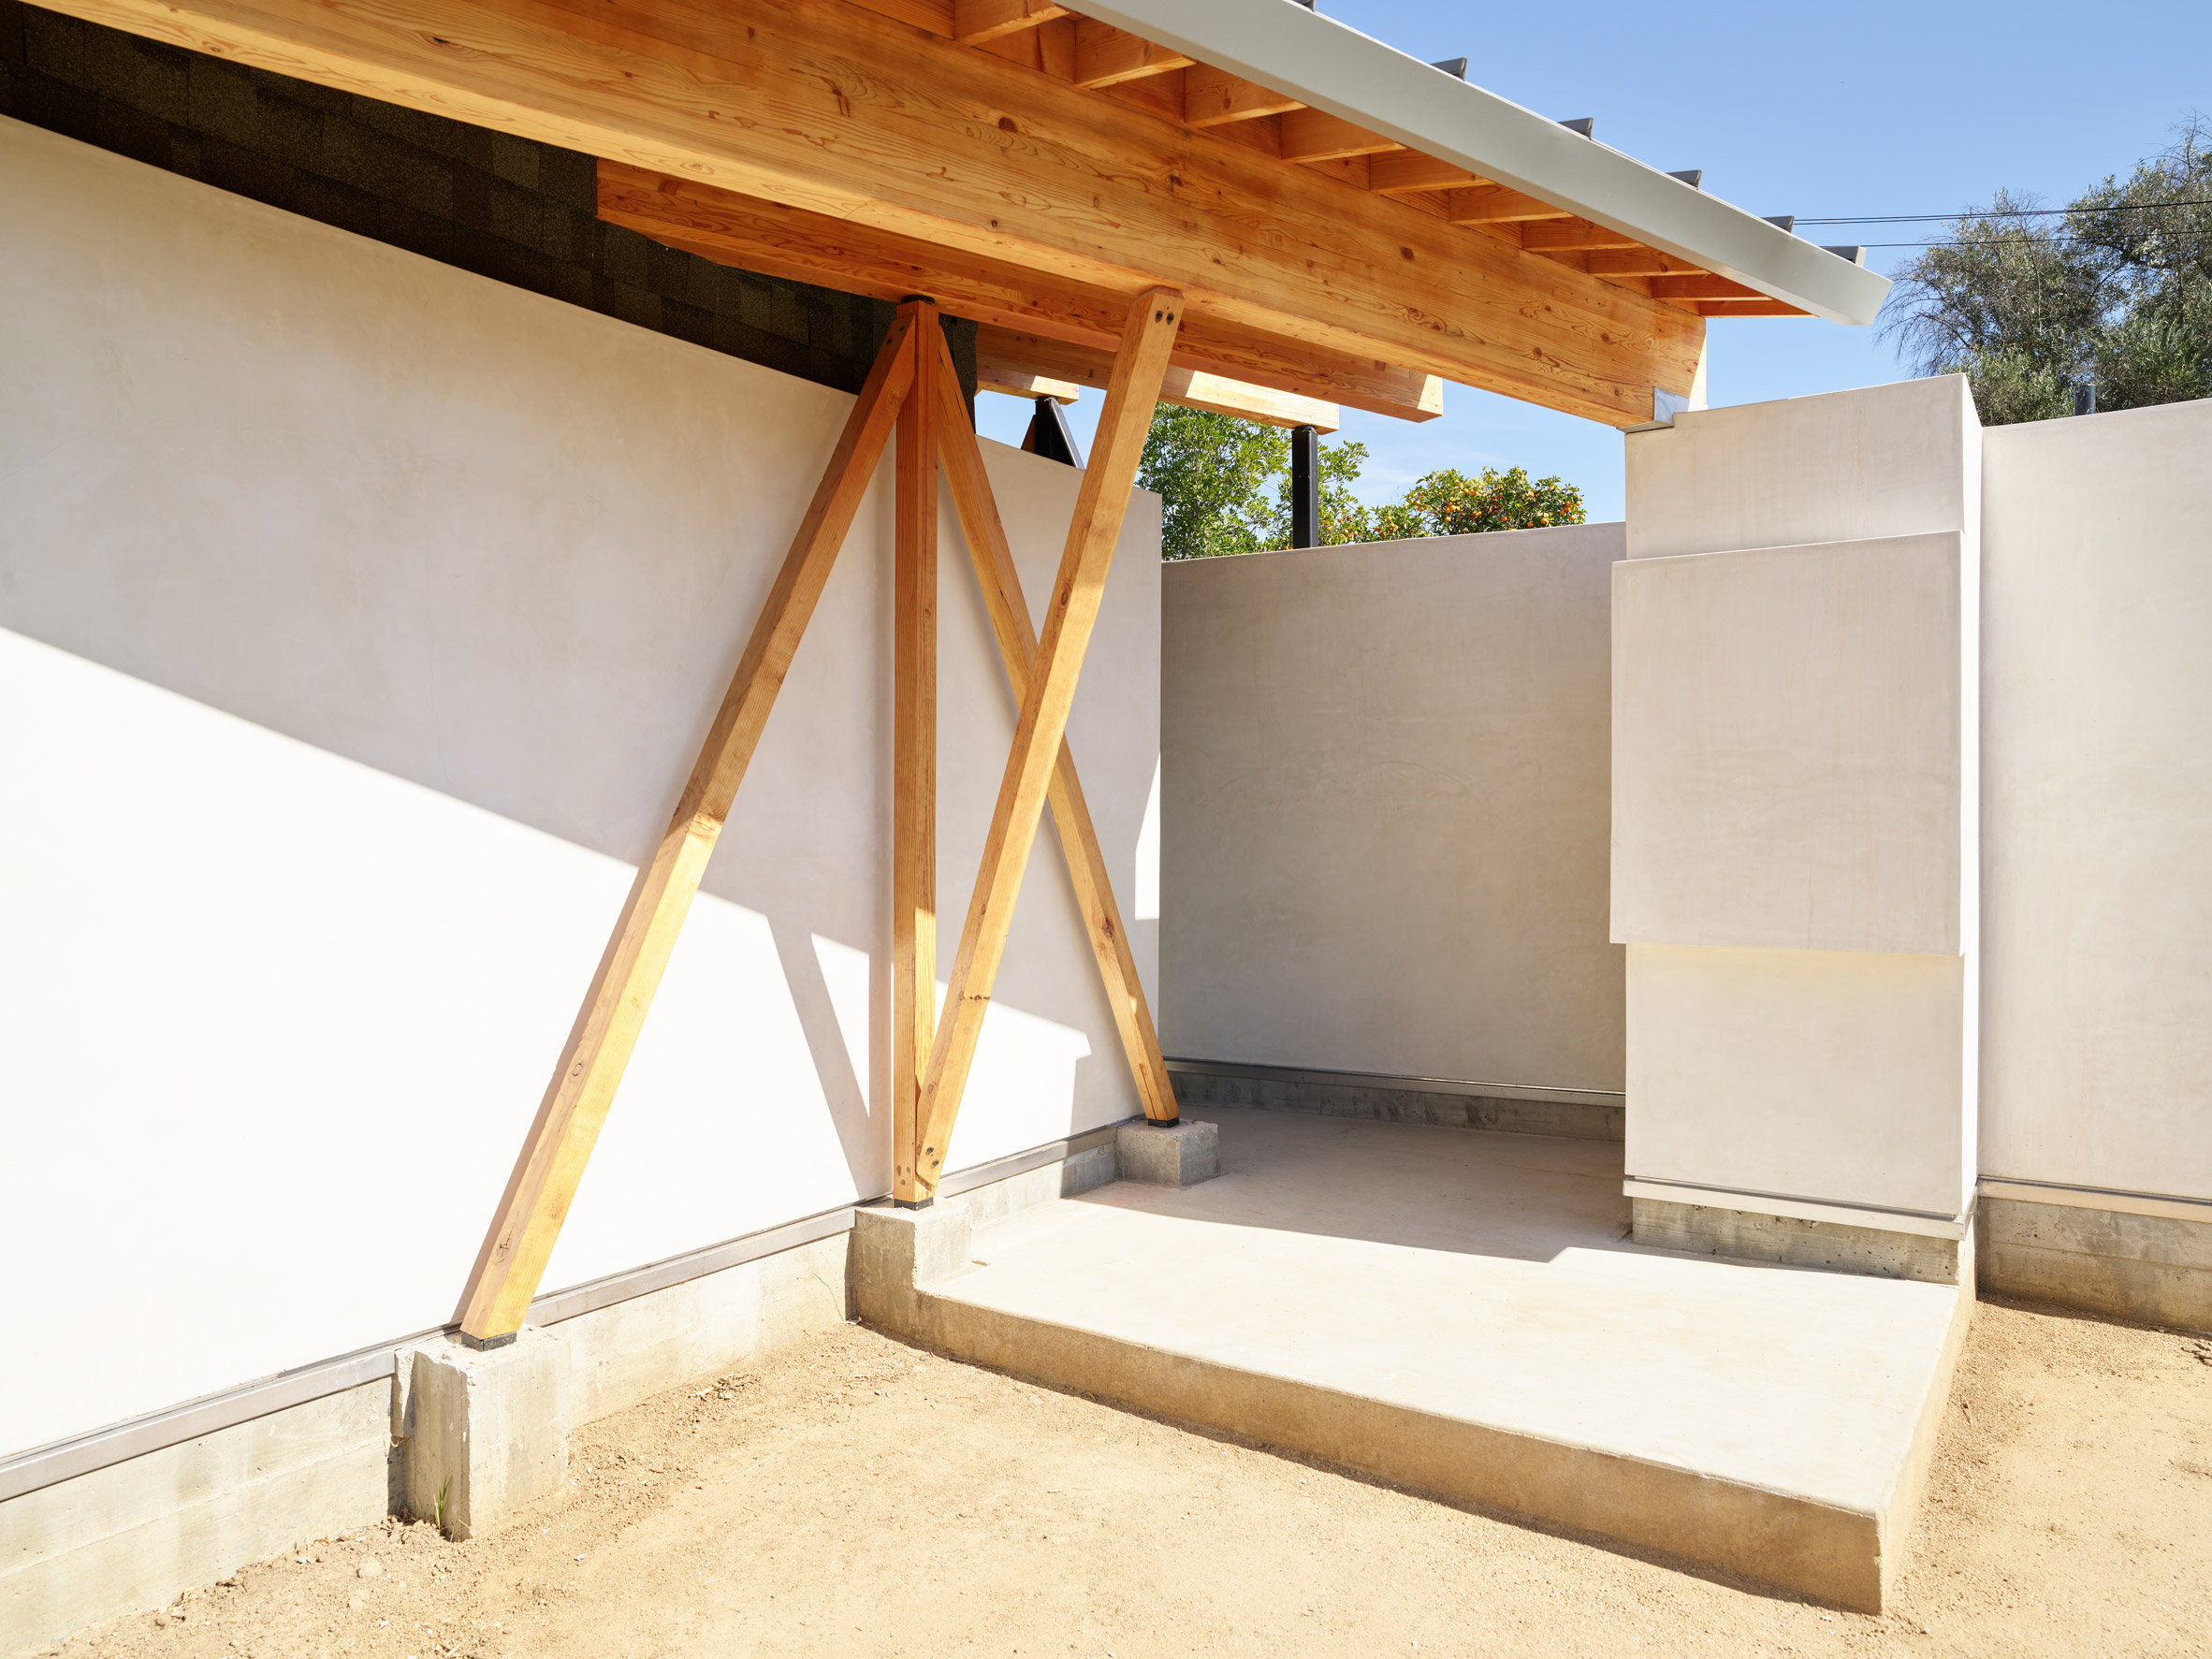 House in Los Angeles by The LADG